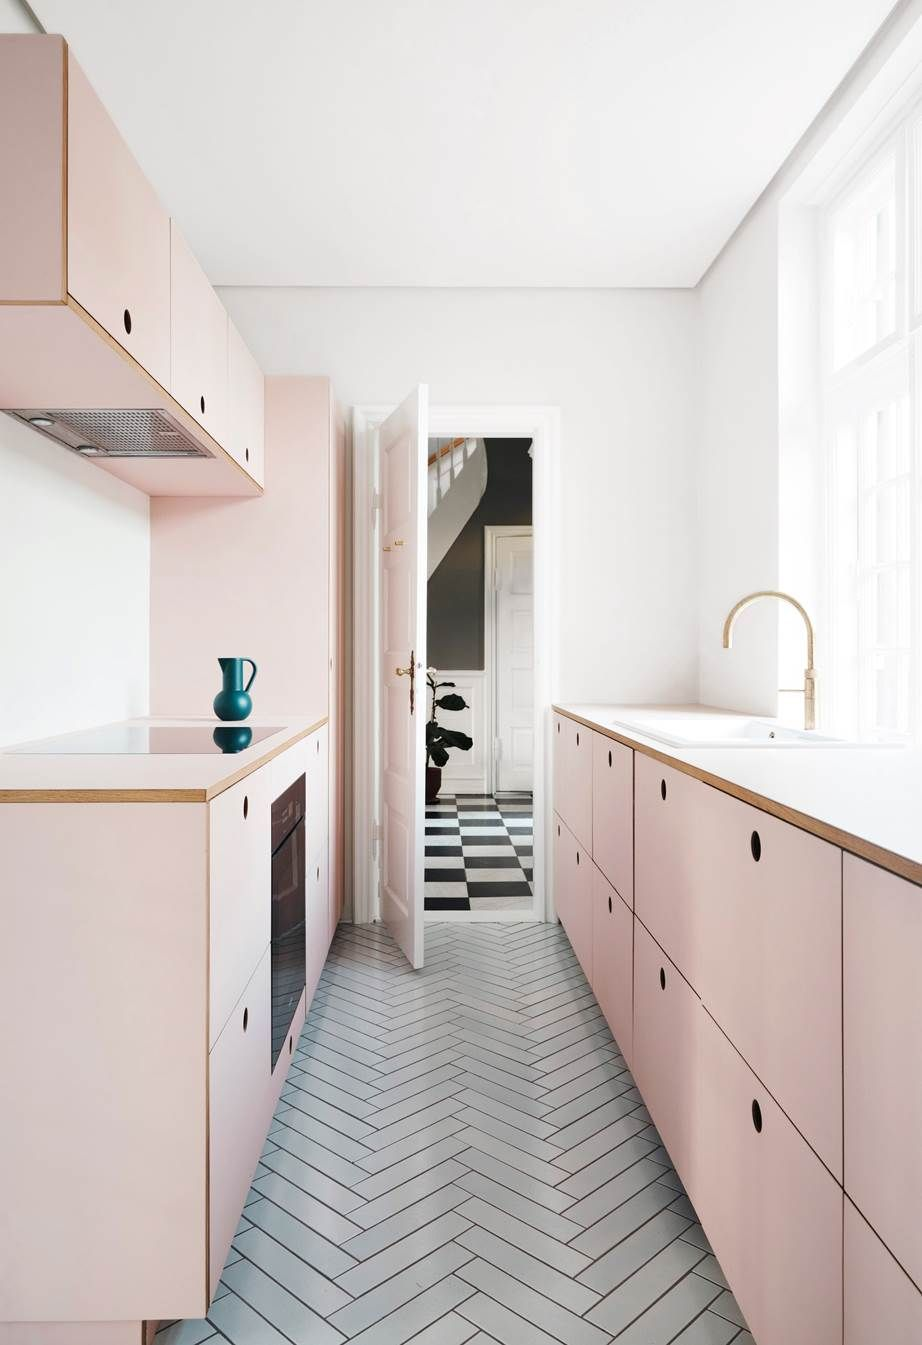 20 kitchens with clever design ideas to steal | Pinterest